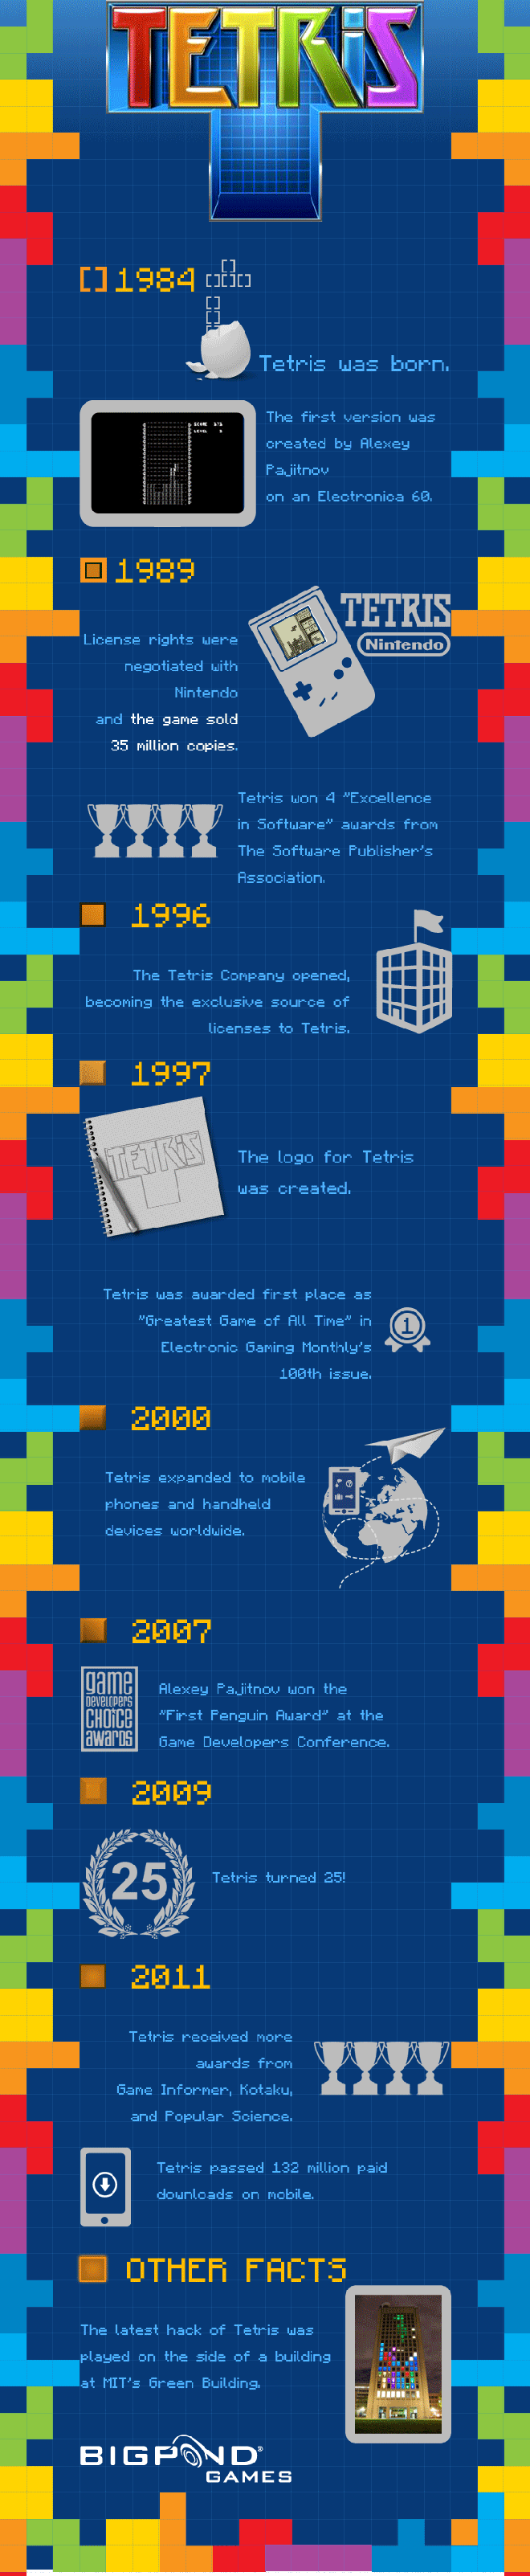 Interesting Facts about Tetris